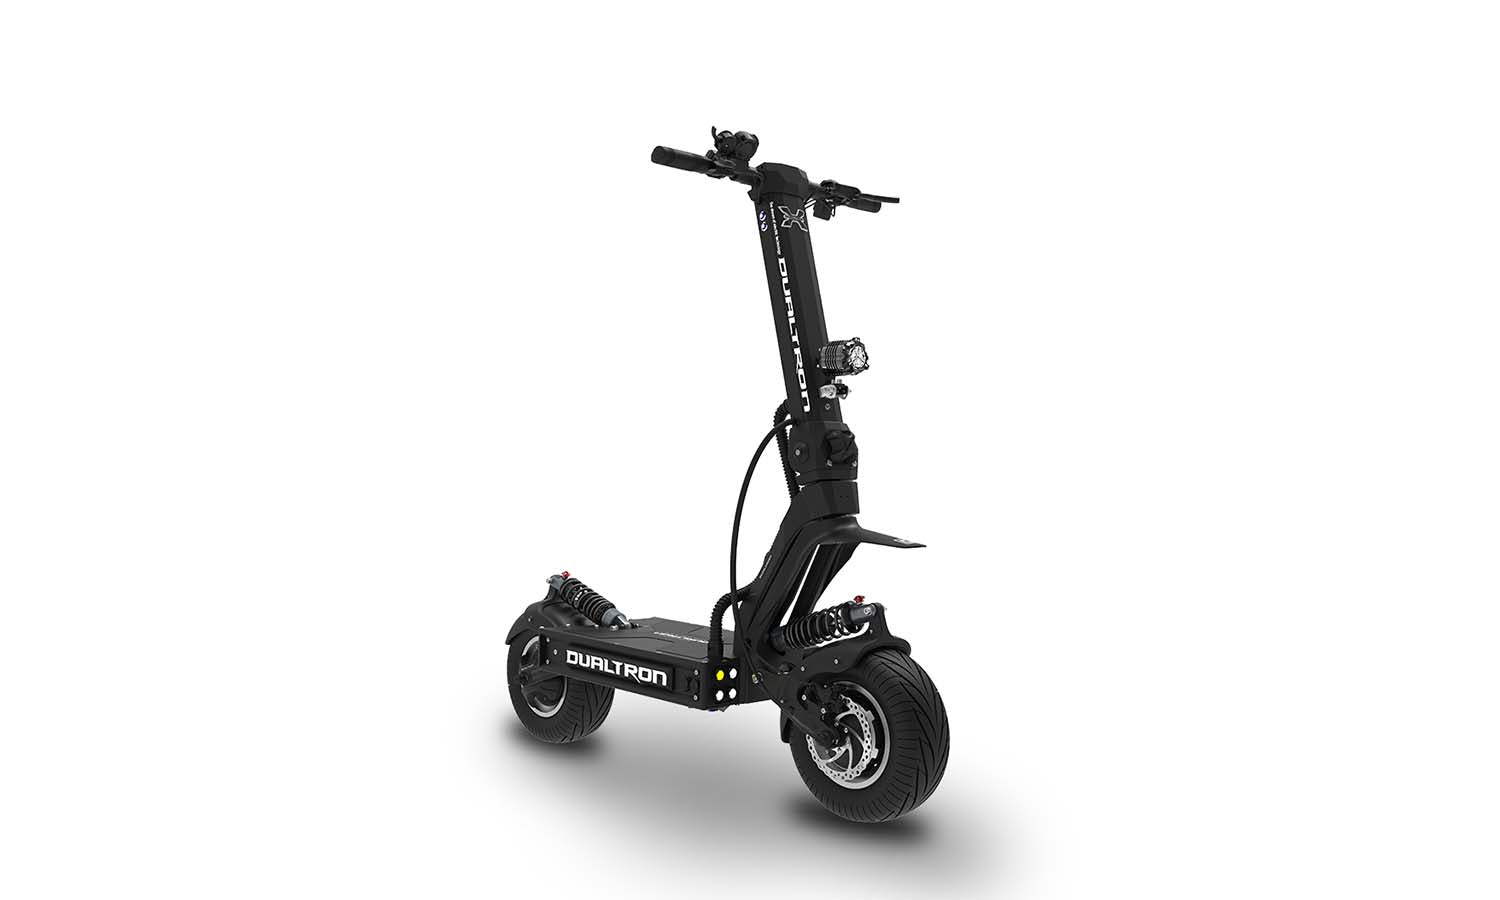 DUALTRON X ELECTRIC SCOOTER PROFILE PHOTO